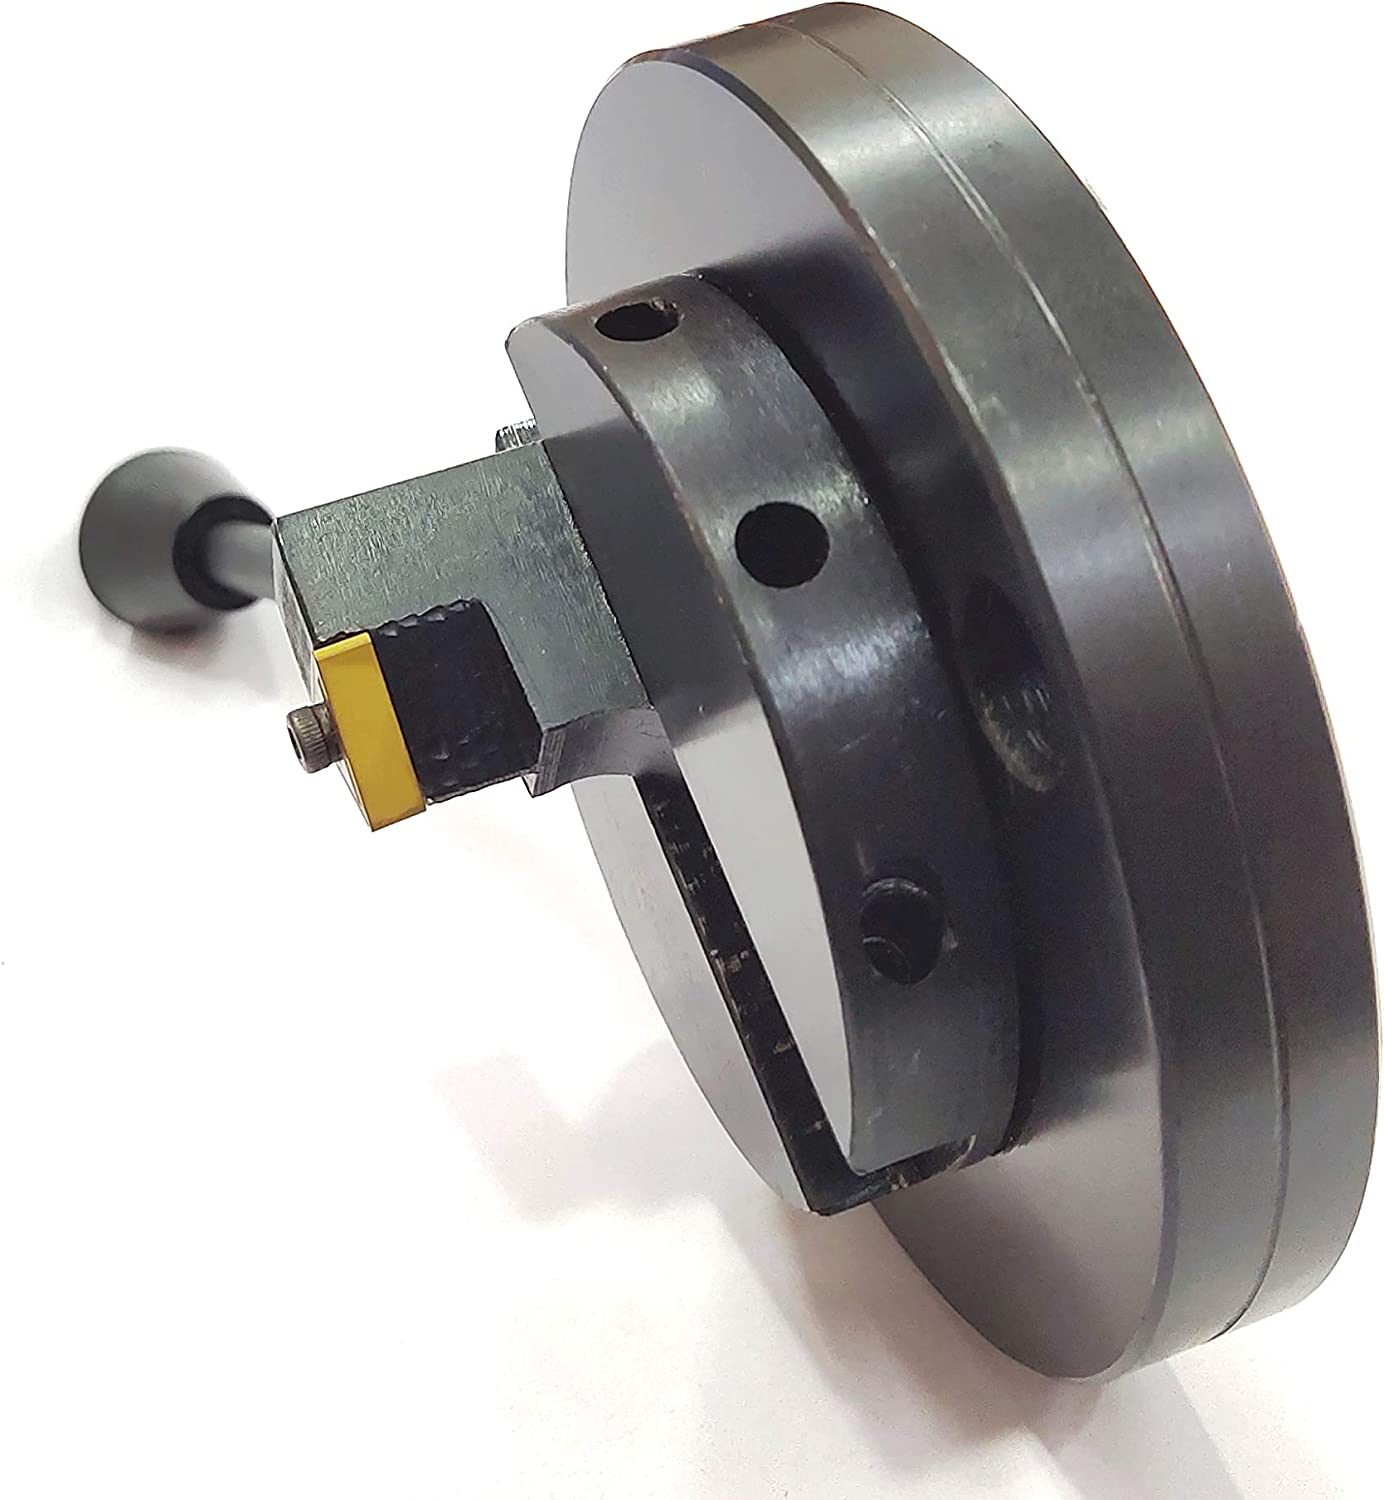 Turns Round Metal Wood Ball Quickly DIY Tool Suits Myford /& Similar Lathes Lathe Machine Attachment